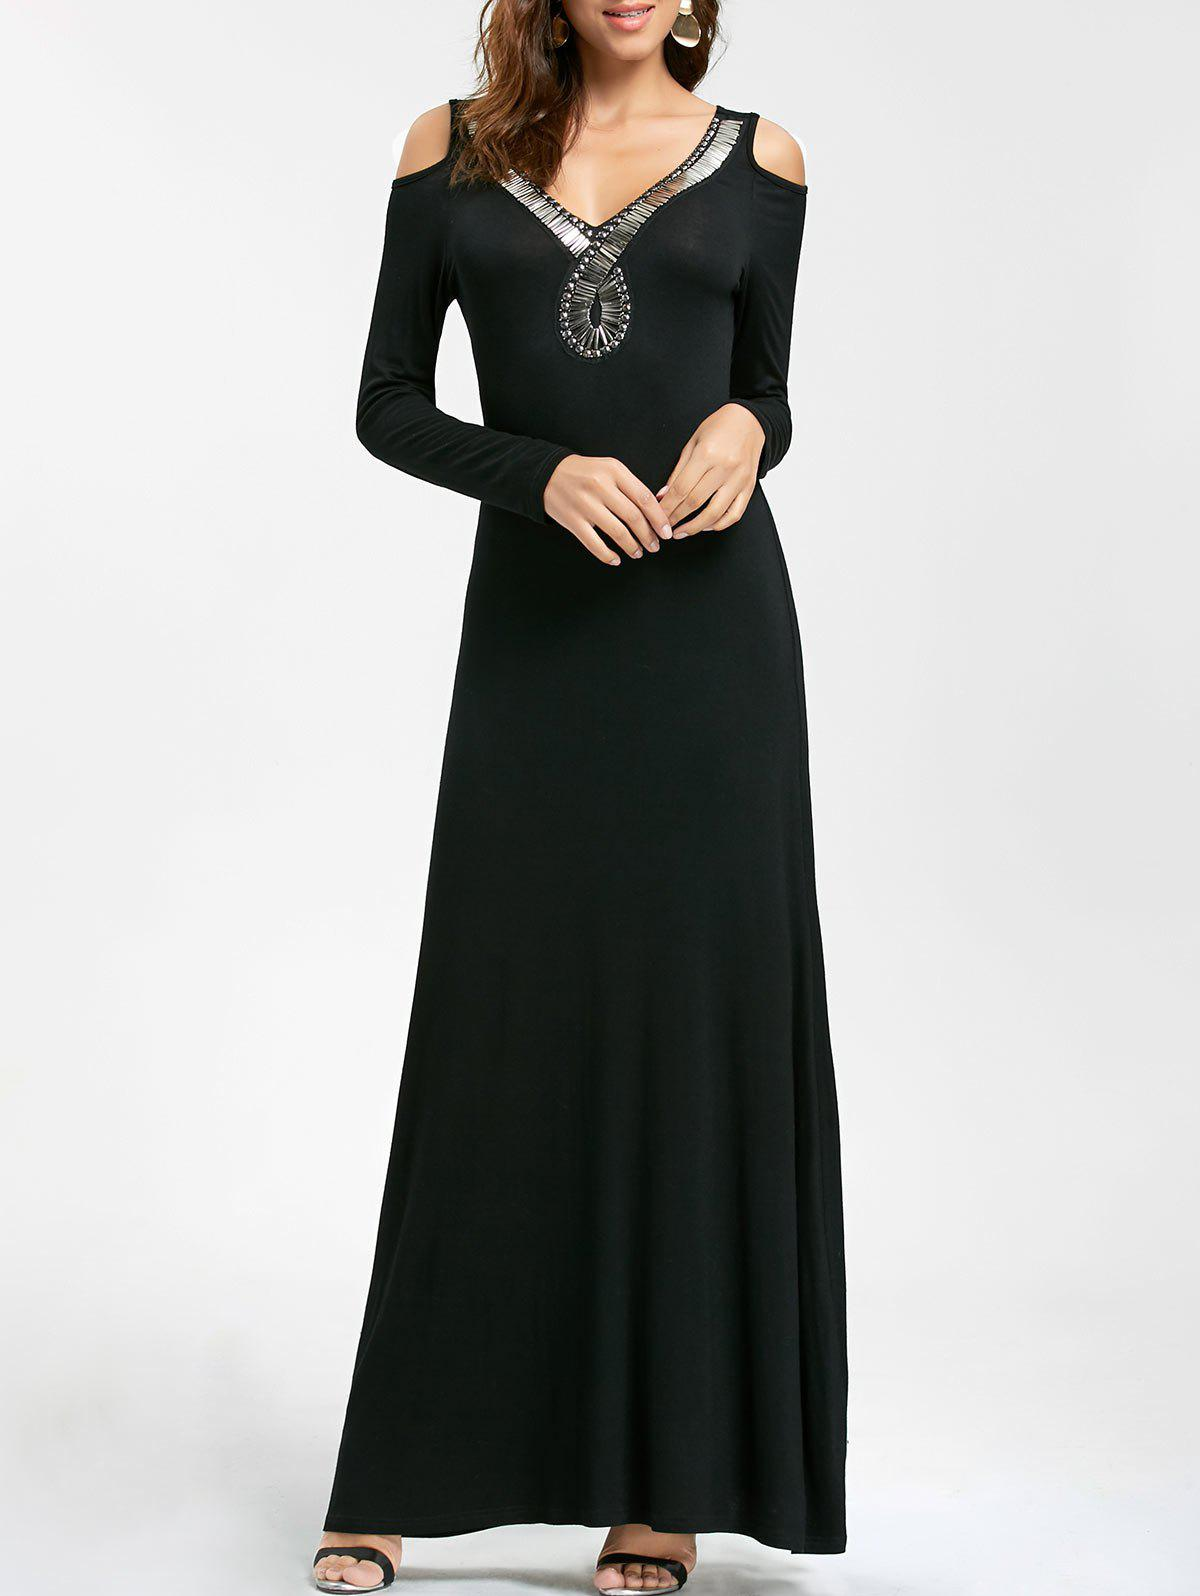 Long Sleeve Beaded Maxi Cold Shoulder Dress club style one shoulder black long beaded sleeve dress for women